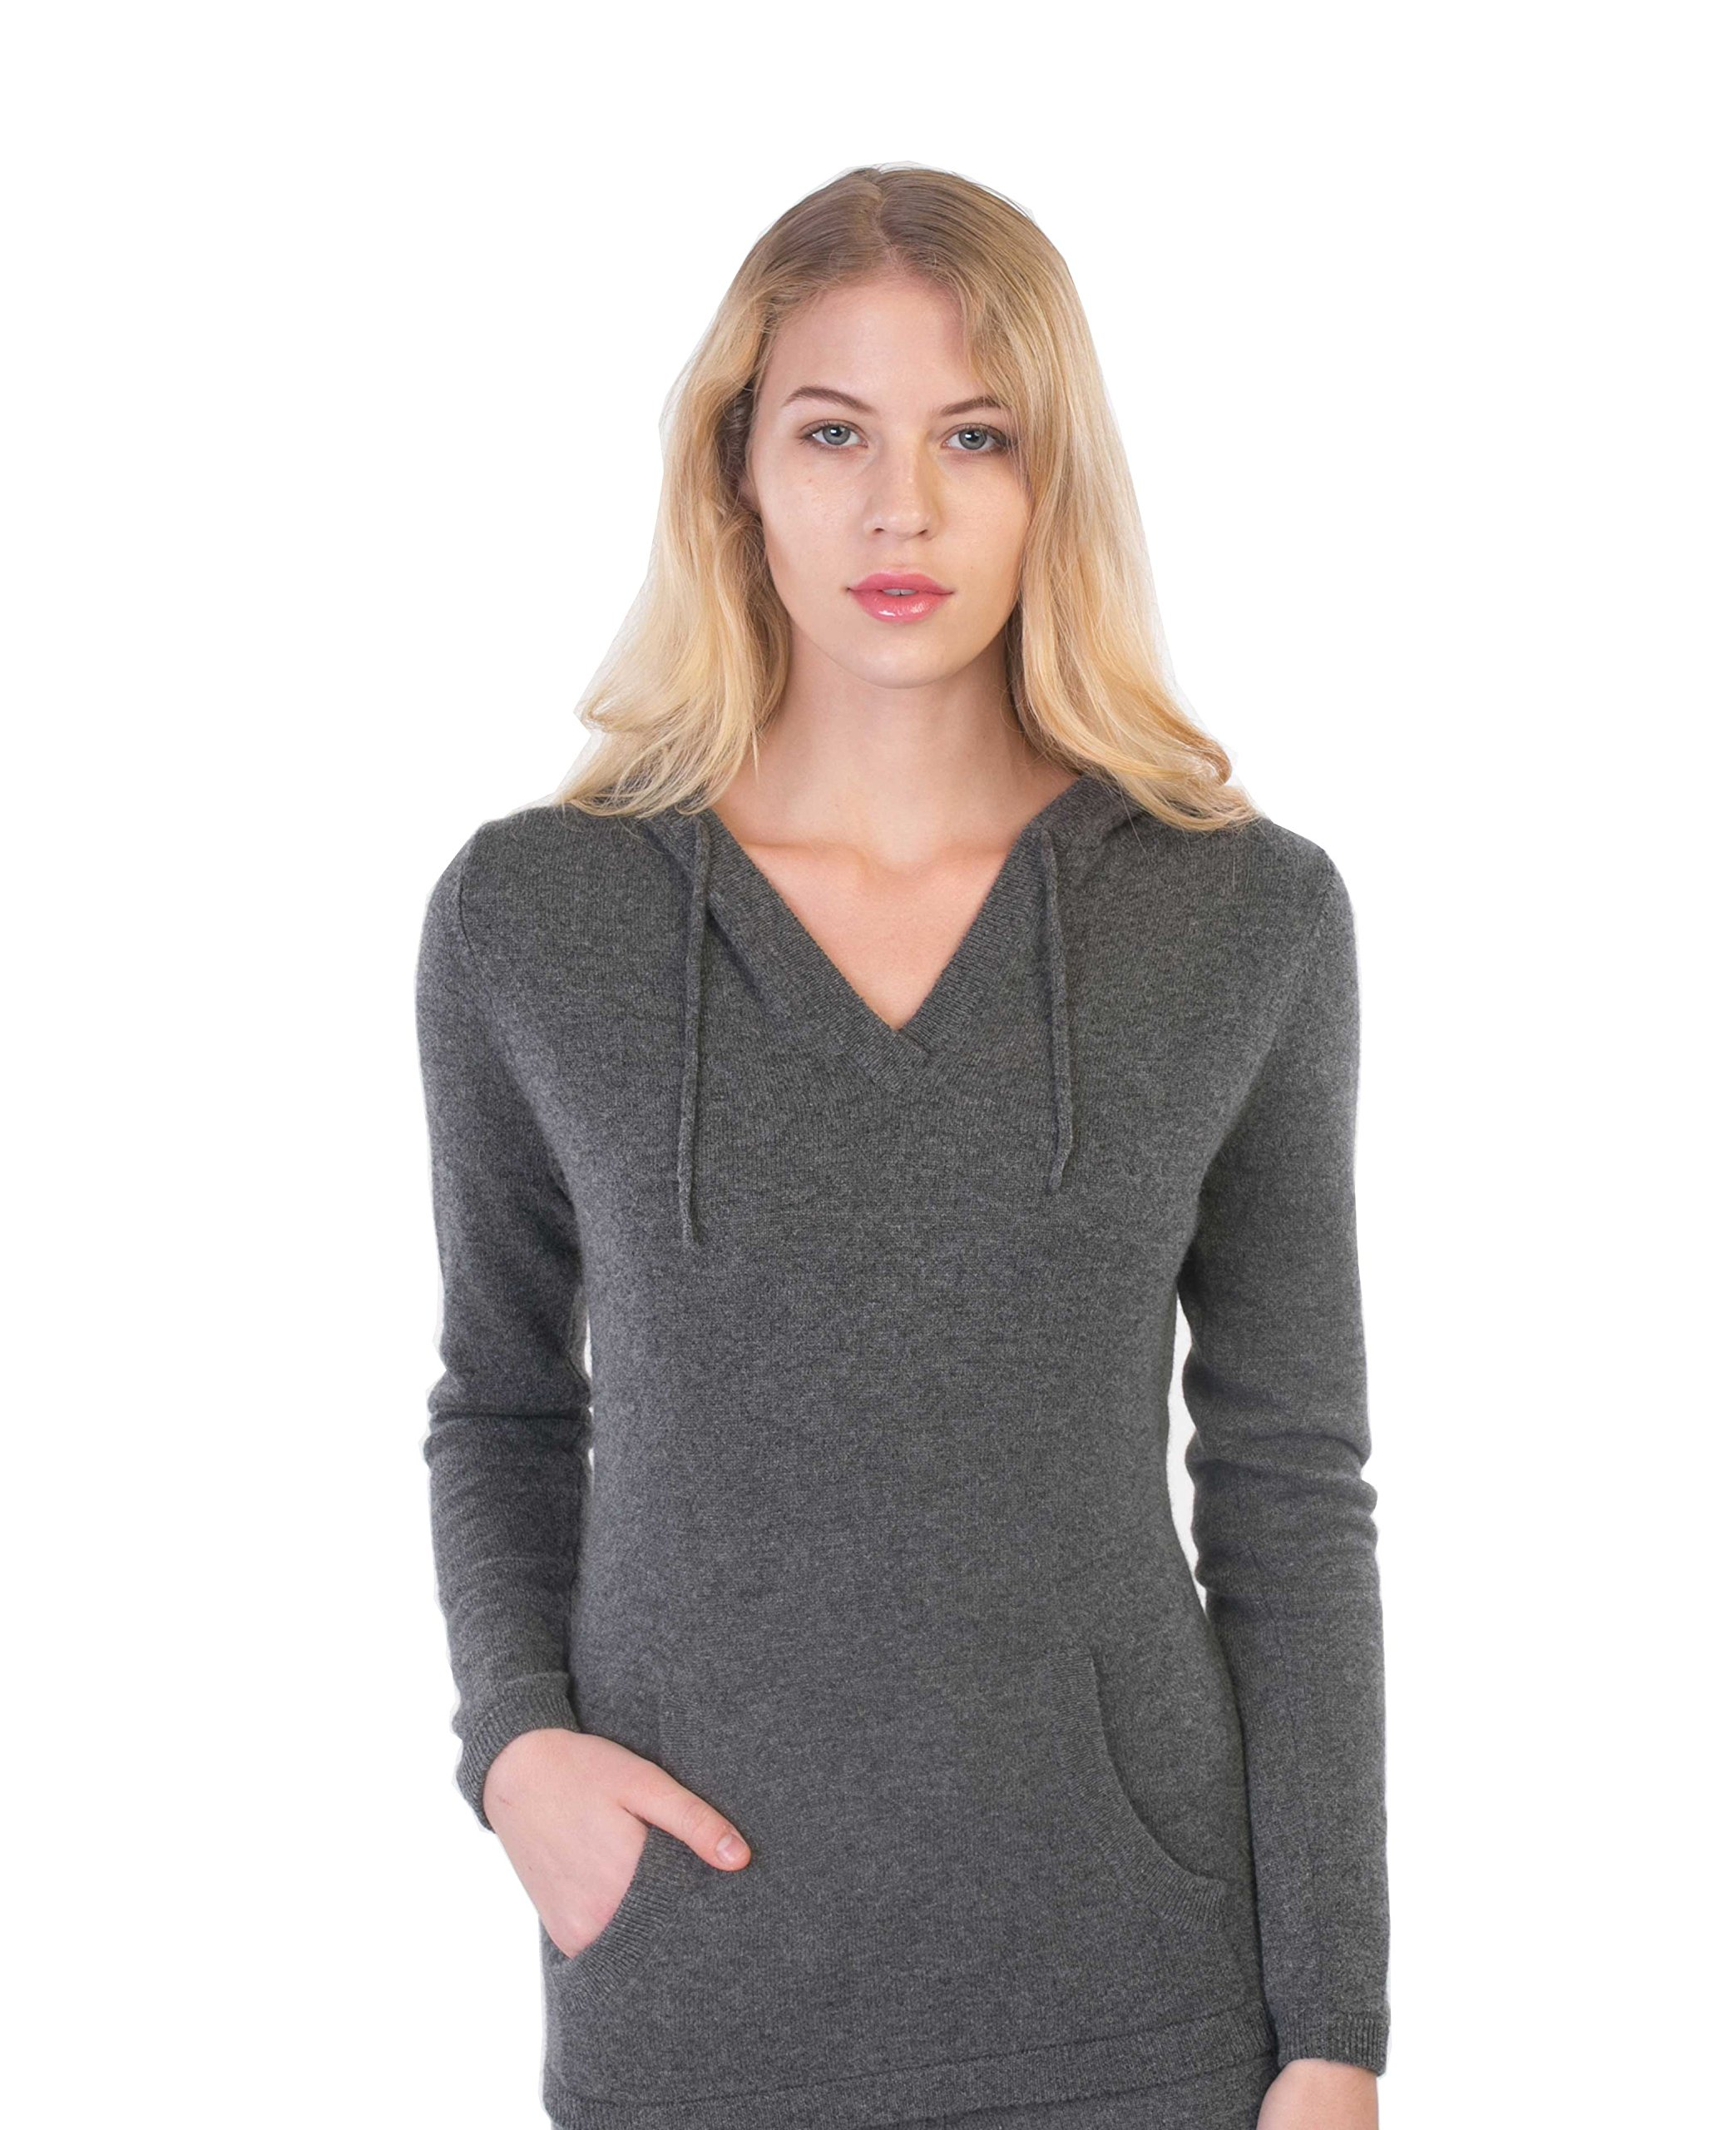 cashmere 4 U Women's 100% Cashmere V Neck Hoodie Sweater Pullover (X-Large, Gris Moyen)